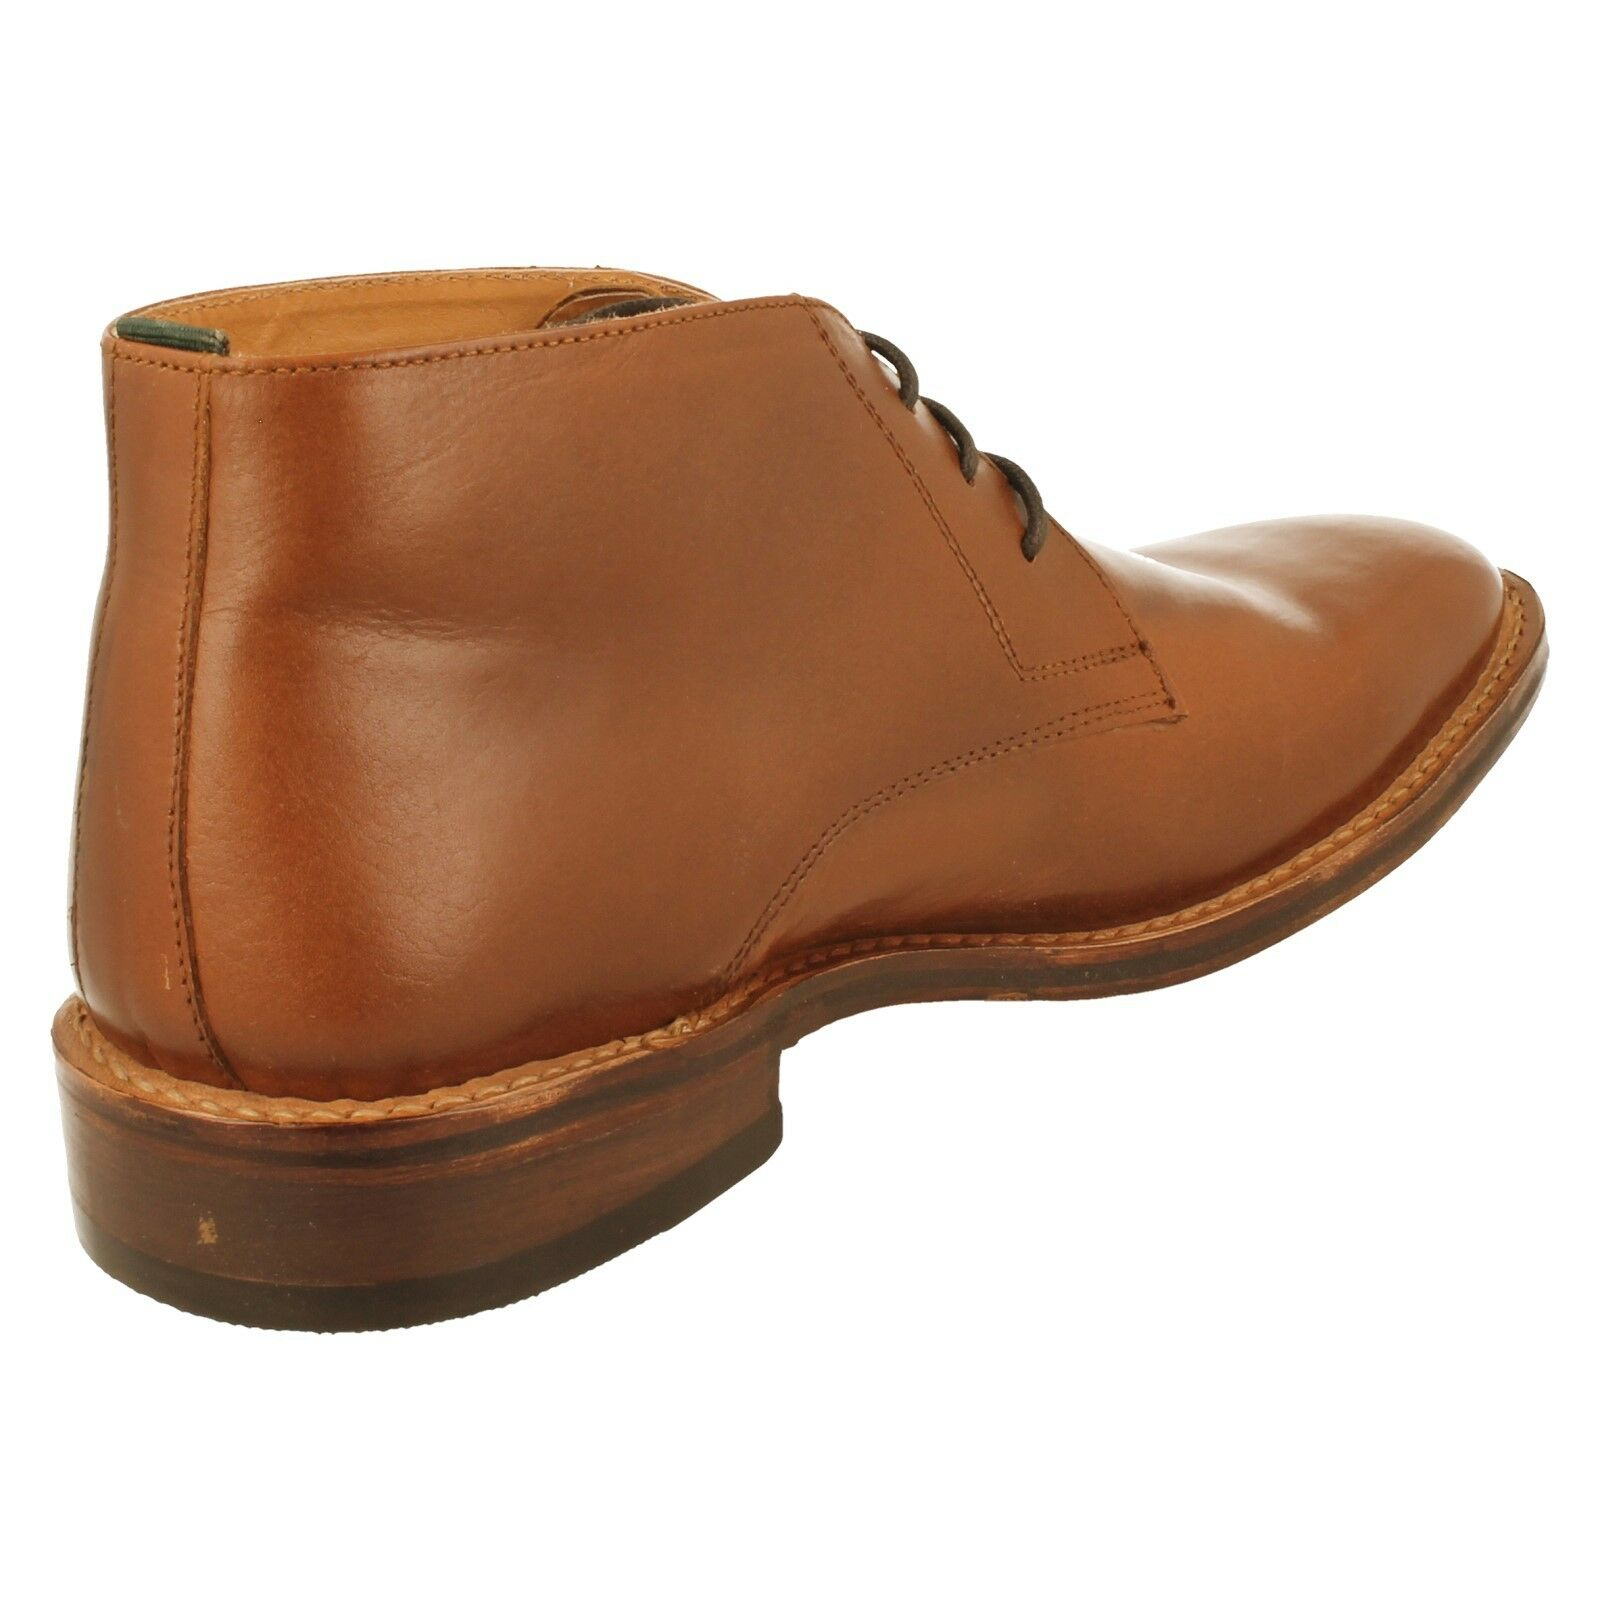 Uomo Catesby in Stivaletto in Catesby pelle - MRG50504C d1affb